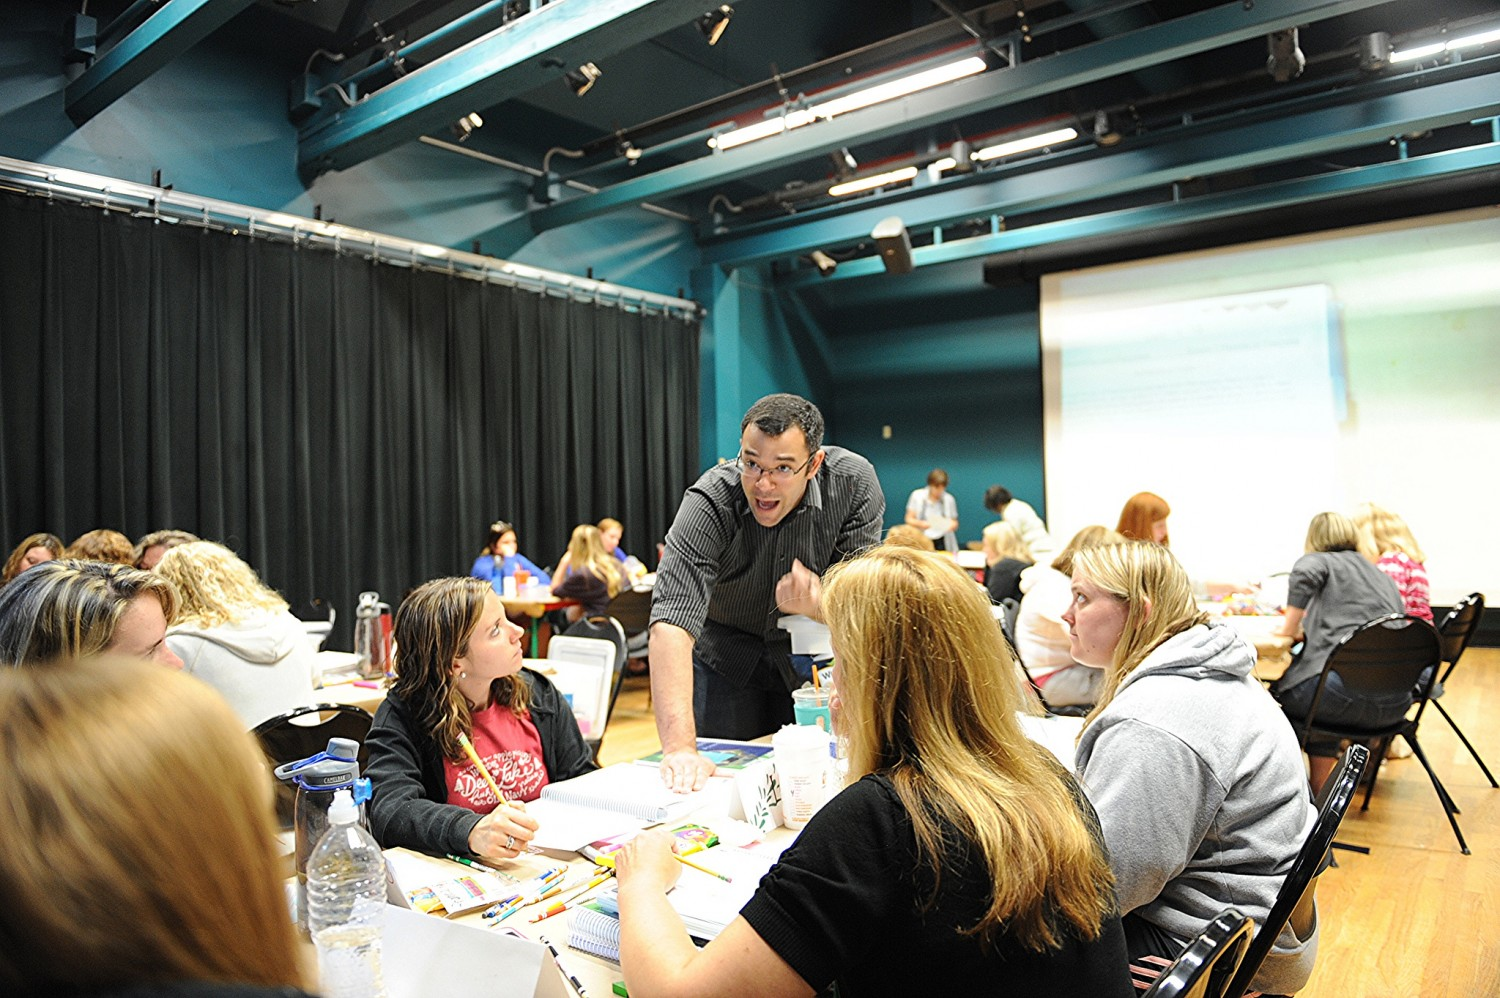 Cameron Hill, assistant professor of mathematics, taught an Intel Math course to area teachers as part of the Green Street Teaching and Learning Center's K-8 Math Institute. The Department of Education recently awarded GSTLC with a grant to expand its program and reach 90 teachers from three new school districts.